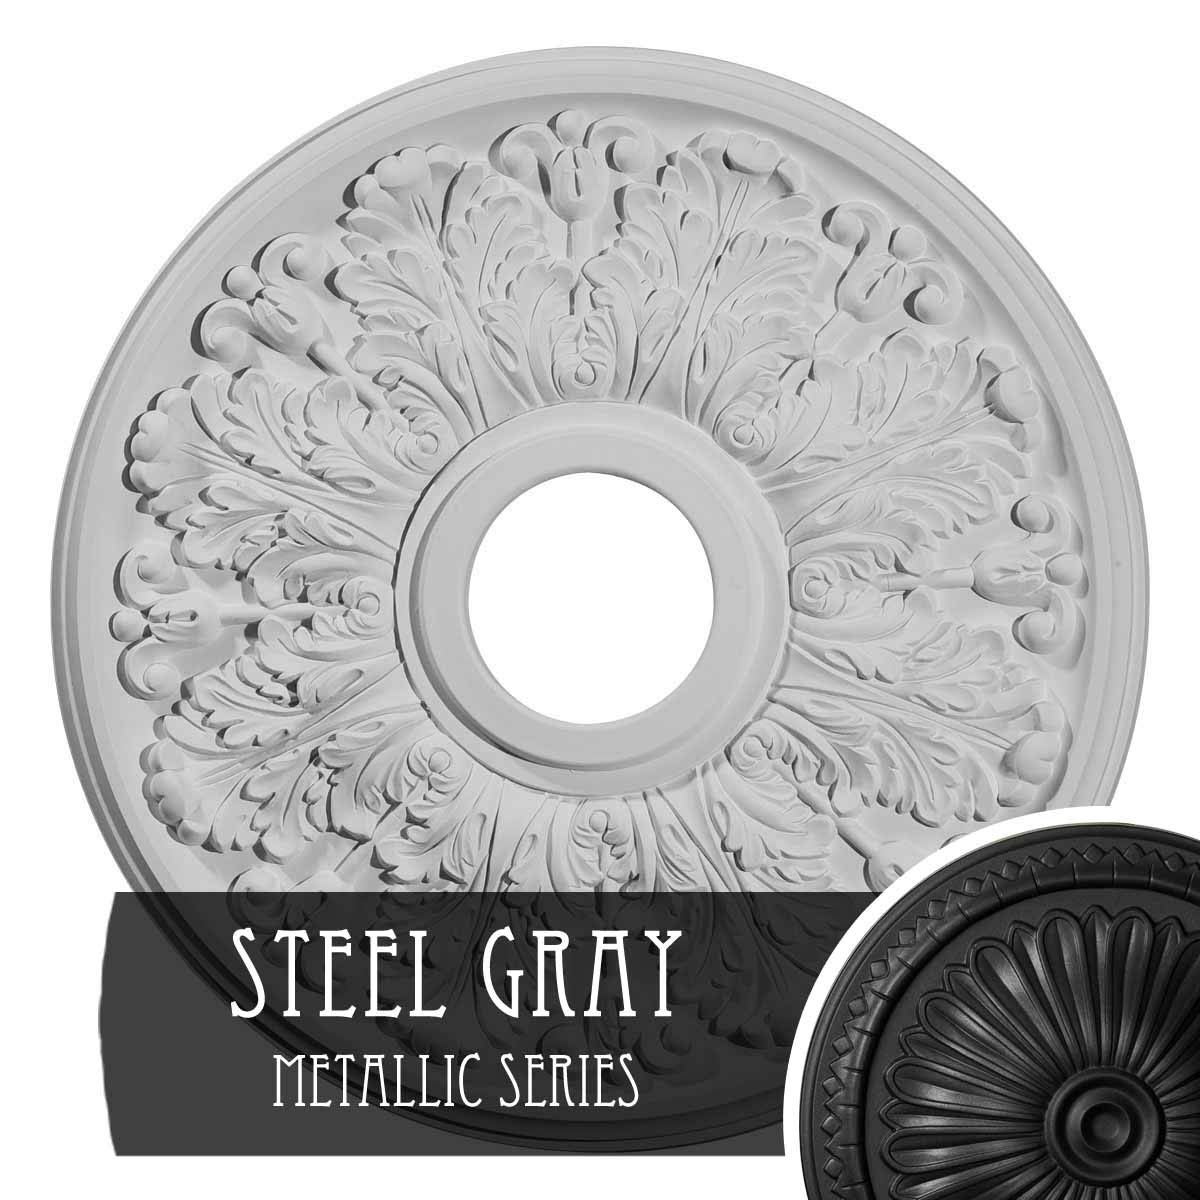 Ekena Millwork CM16APSGS 16 1/2'' Od X 3 Id X 1 1/8'' P Apollo (fits Canopies up to 5 5/8''), Hand-Painted Ceiling Medallion, Steel Gray